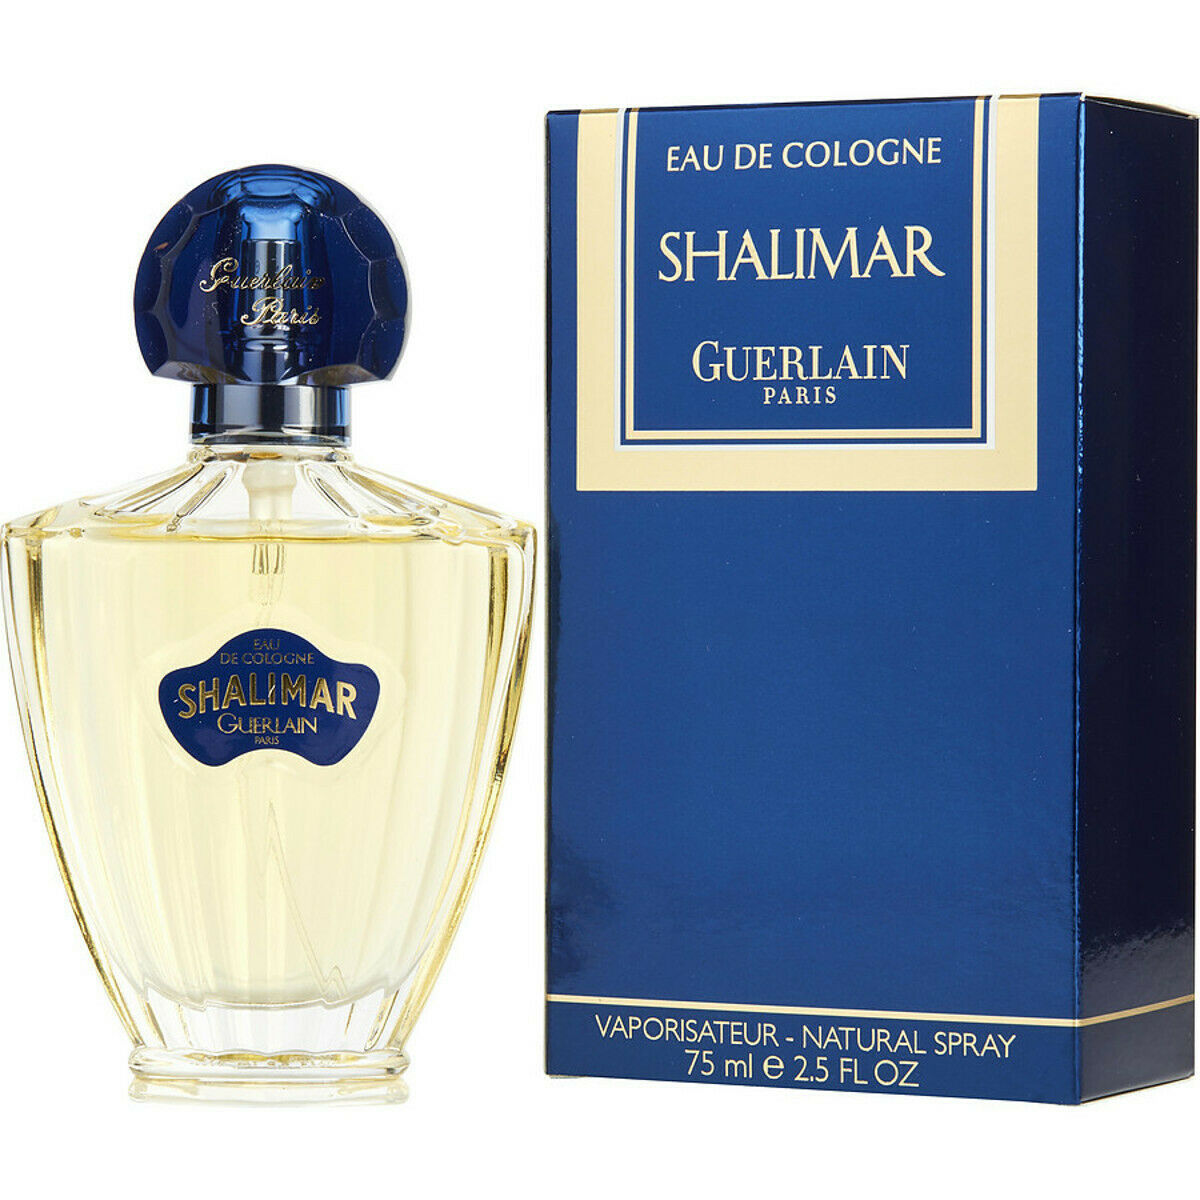 Primary image for Shalimar Guerlain for Women Eau De Cologne Spray 2.5 FL OZ